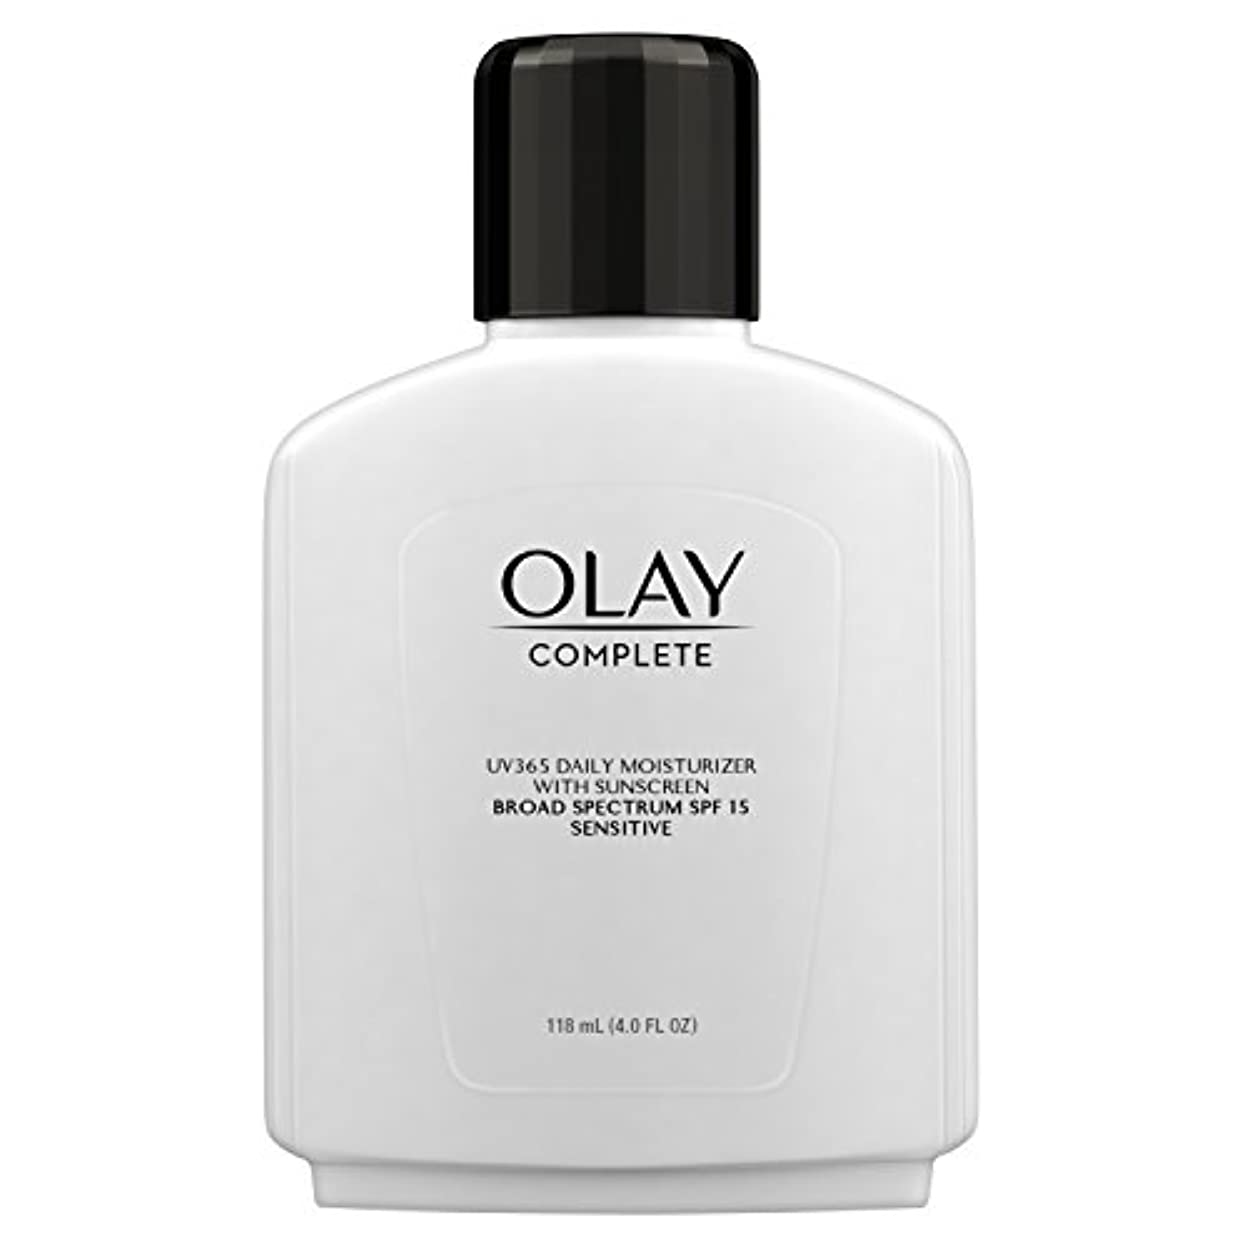 ヒール竜巻共和党Olay Complete All Day Moisture Lotion UV Defense SPF 15, Sensitive Skin, 4 fl oz (118 ml) (1 pack) (並行輸入品)